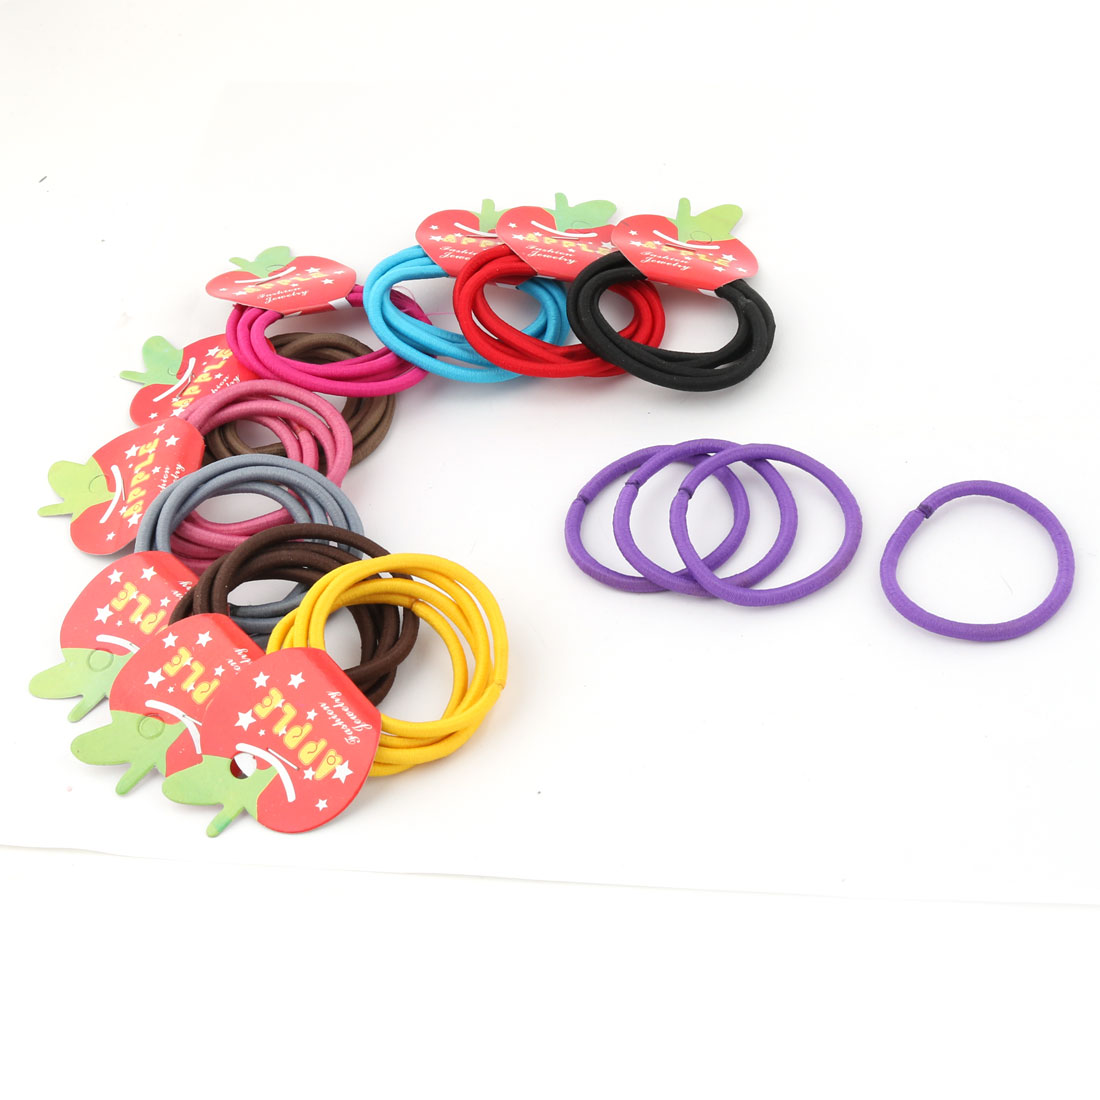 Woman Elastic Hair Band Ties Rope Scrunchie Ponytail Holder Assorted Color 40 PCS